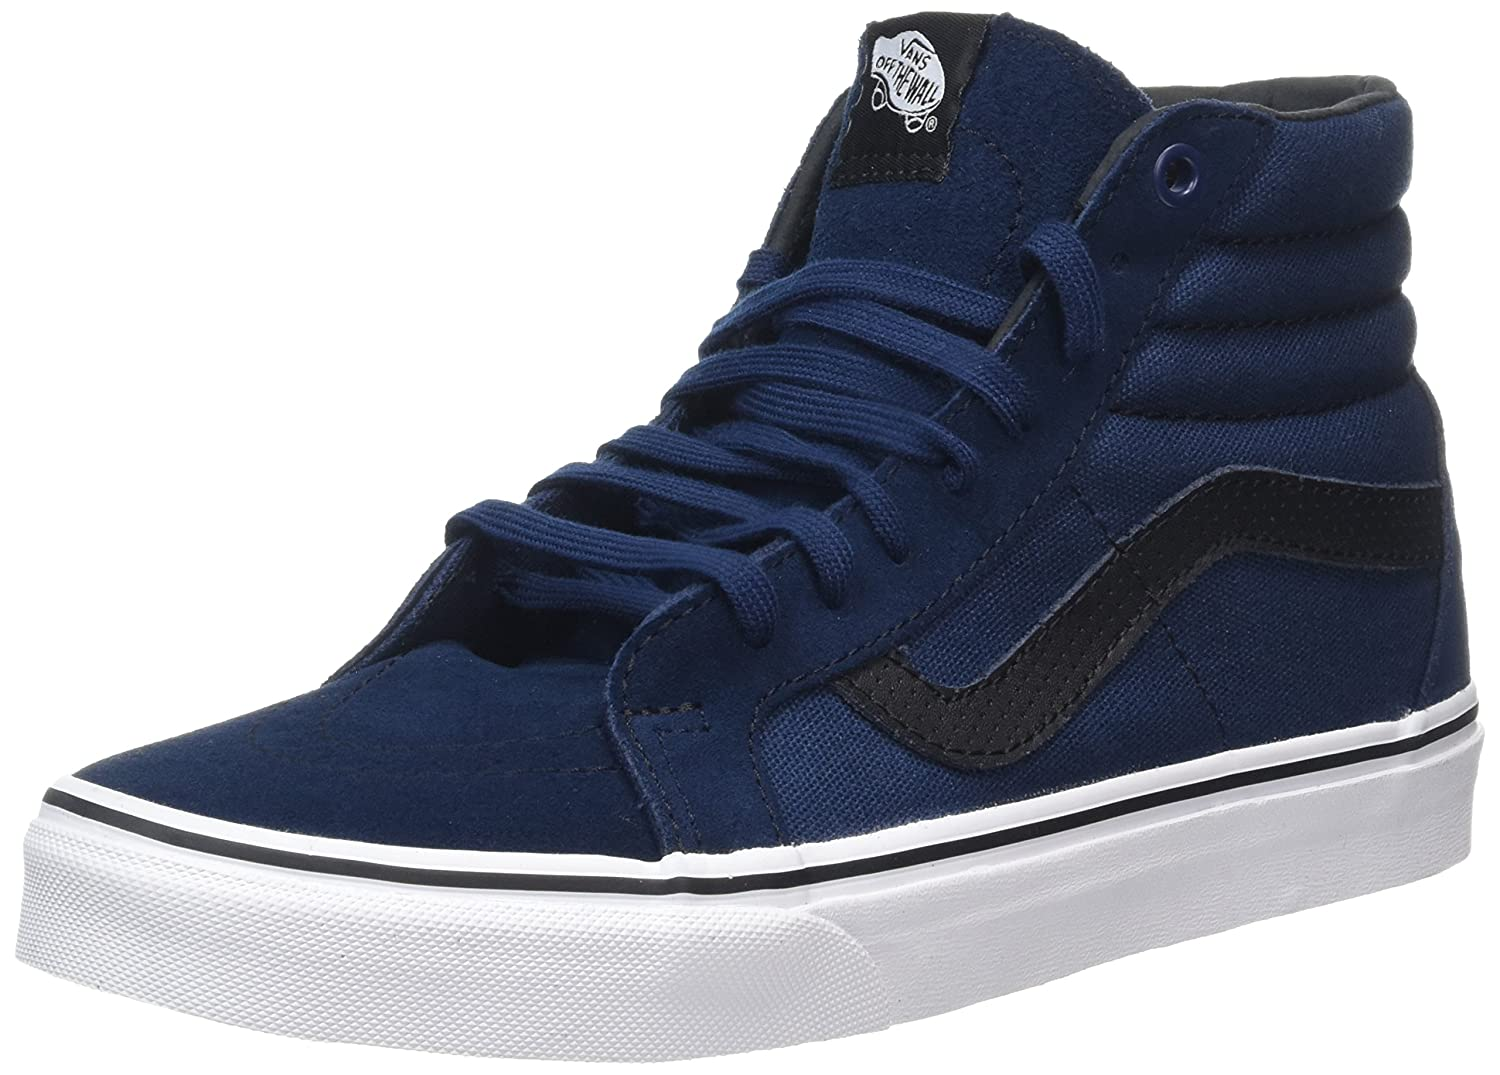 VANS MENS SK8 HI REISSUE LEATHER SHOES B019KWIY42 8.5 B(M) US Women / 7 D(M) US Men|Dress Blue/Black